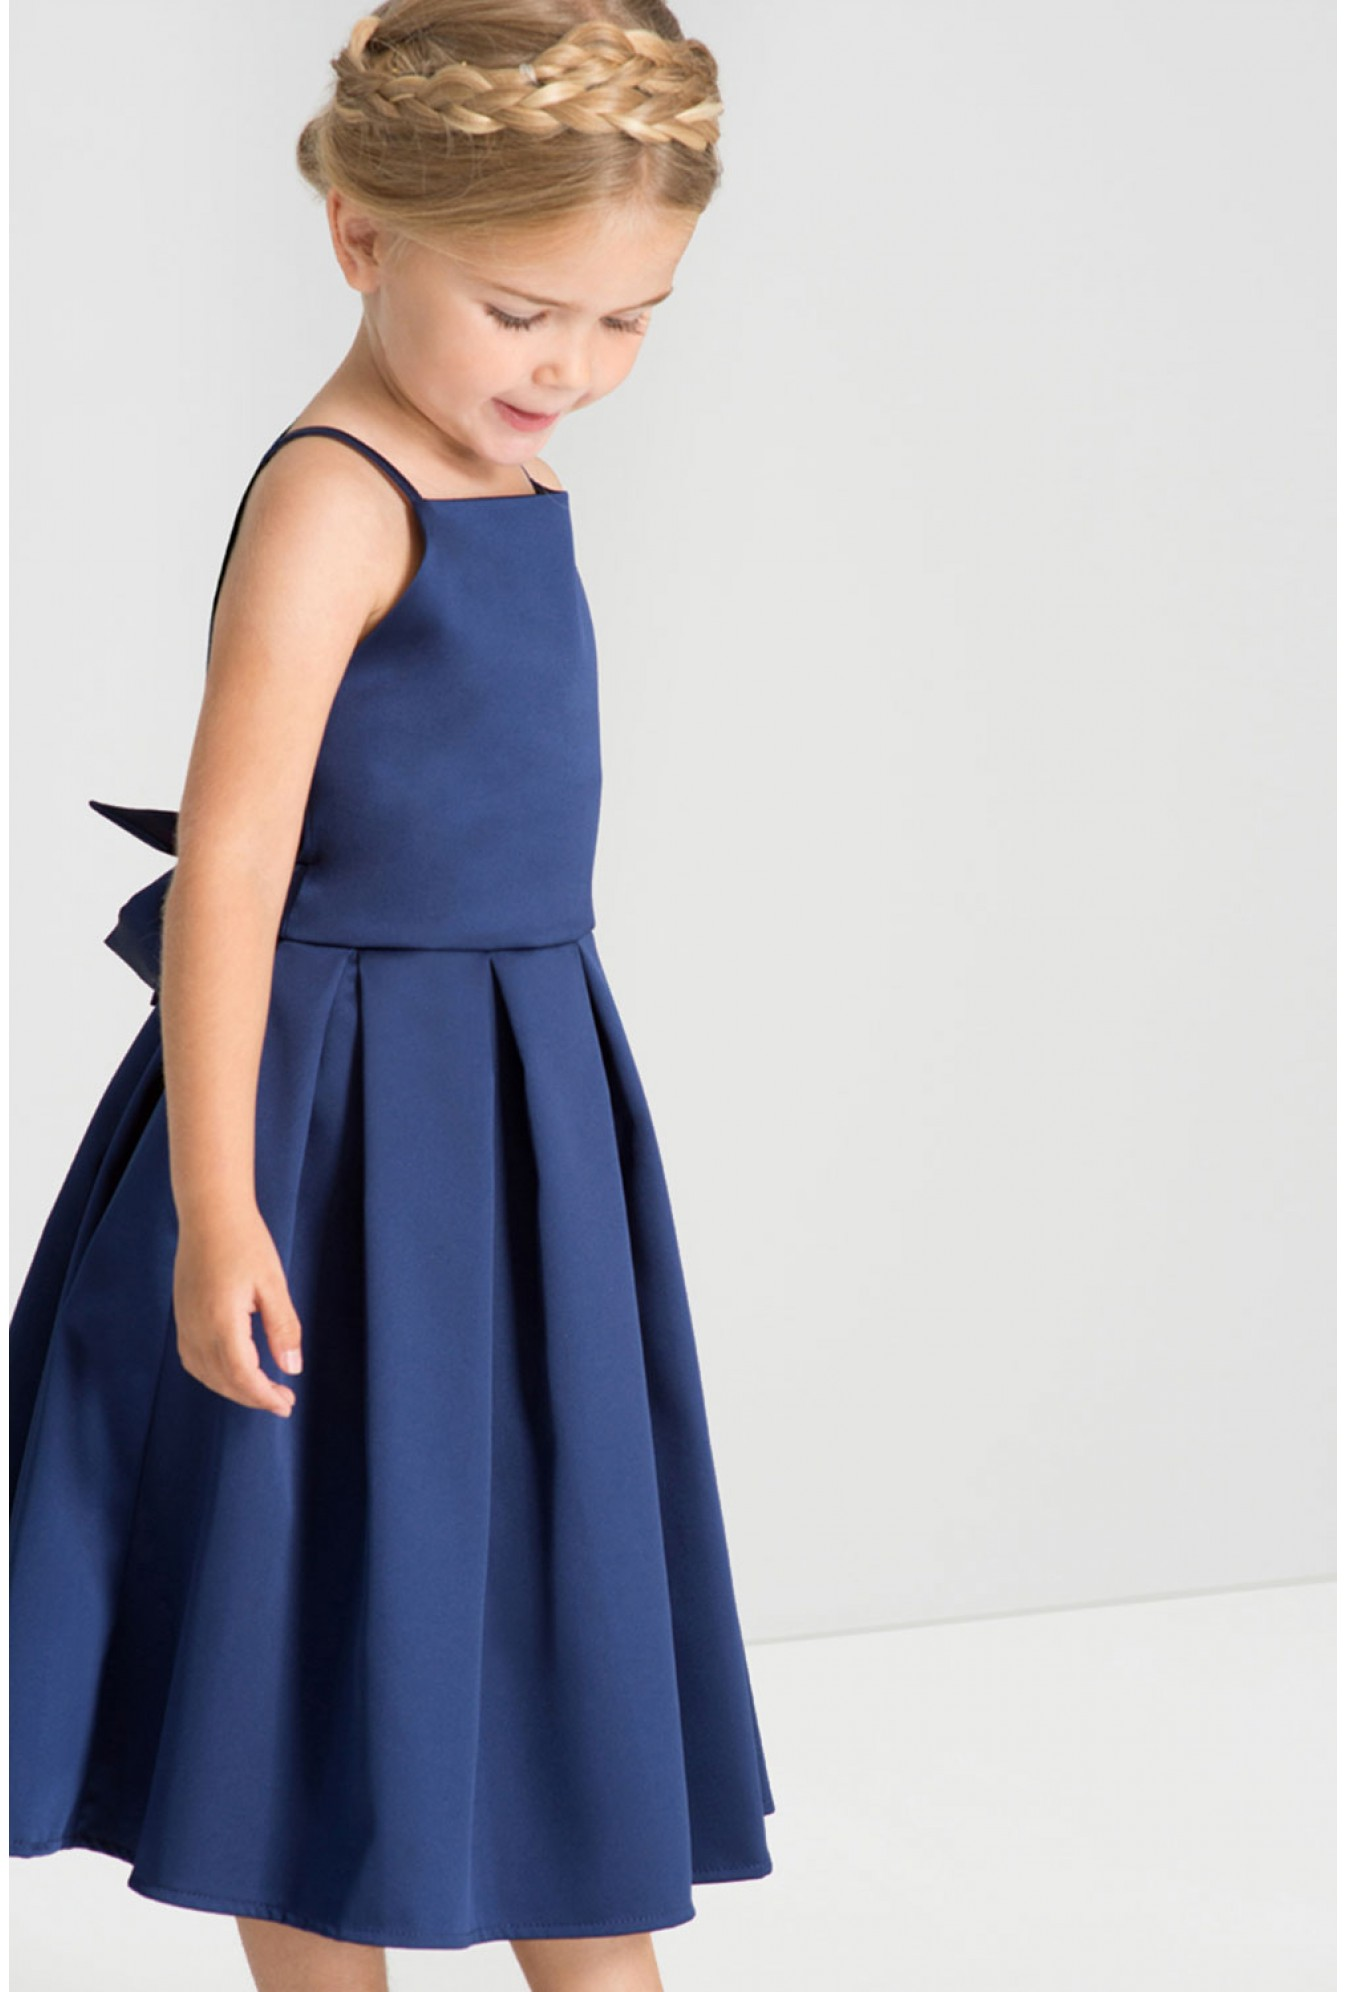 646f7442ef0f1 Chi Chi Abigail Kids Tie-Back Satin Occasion Dress in Navy | iCLOTHING